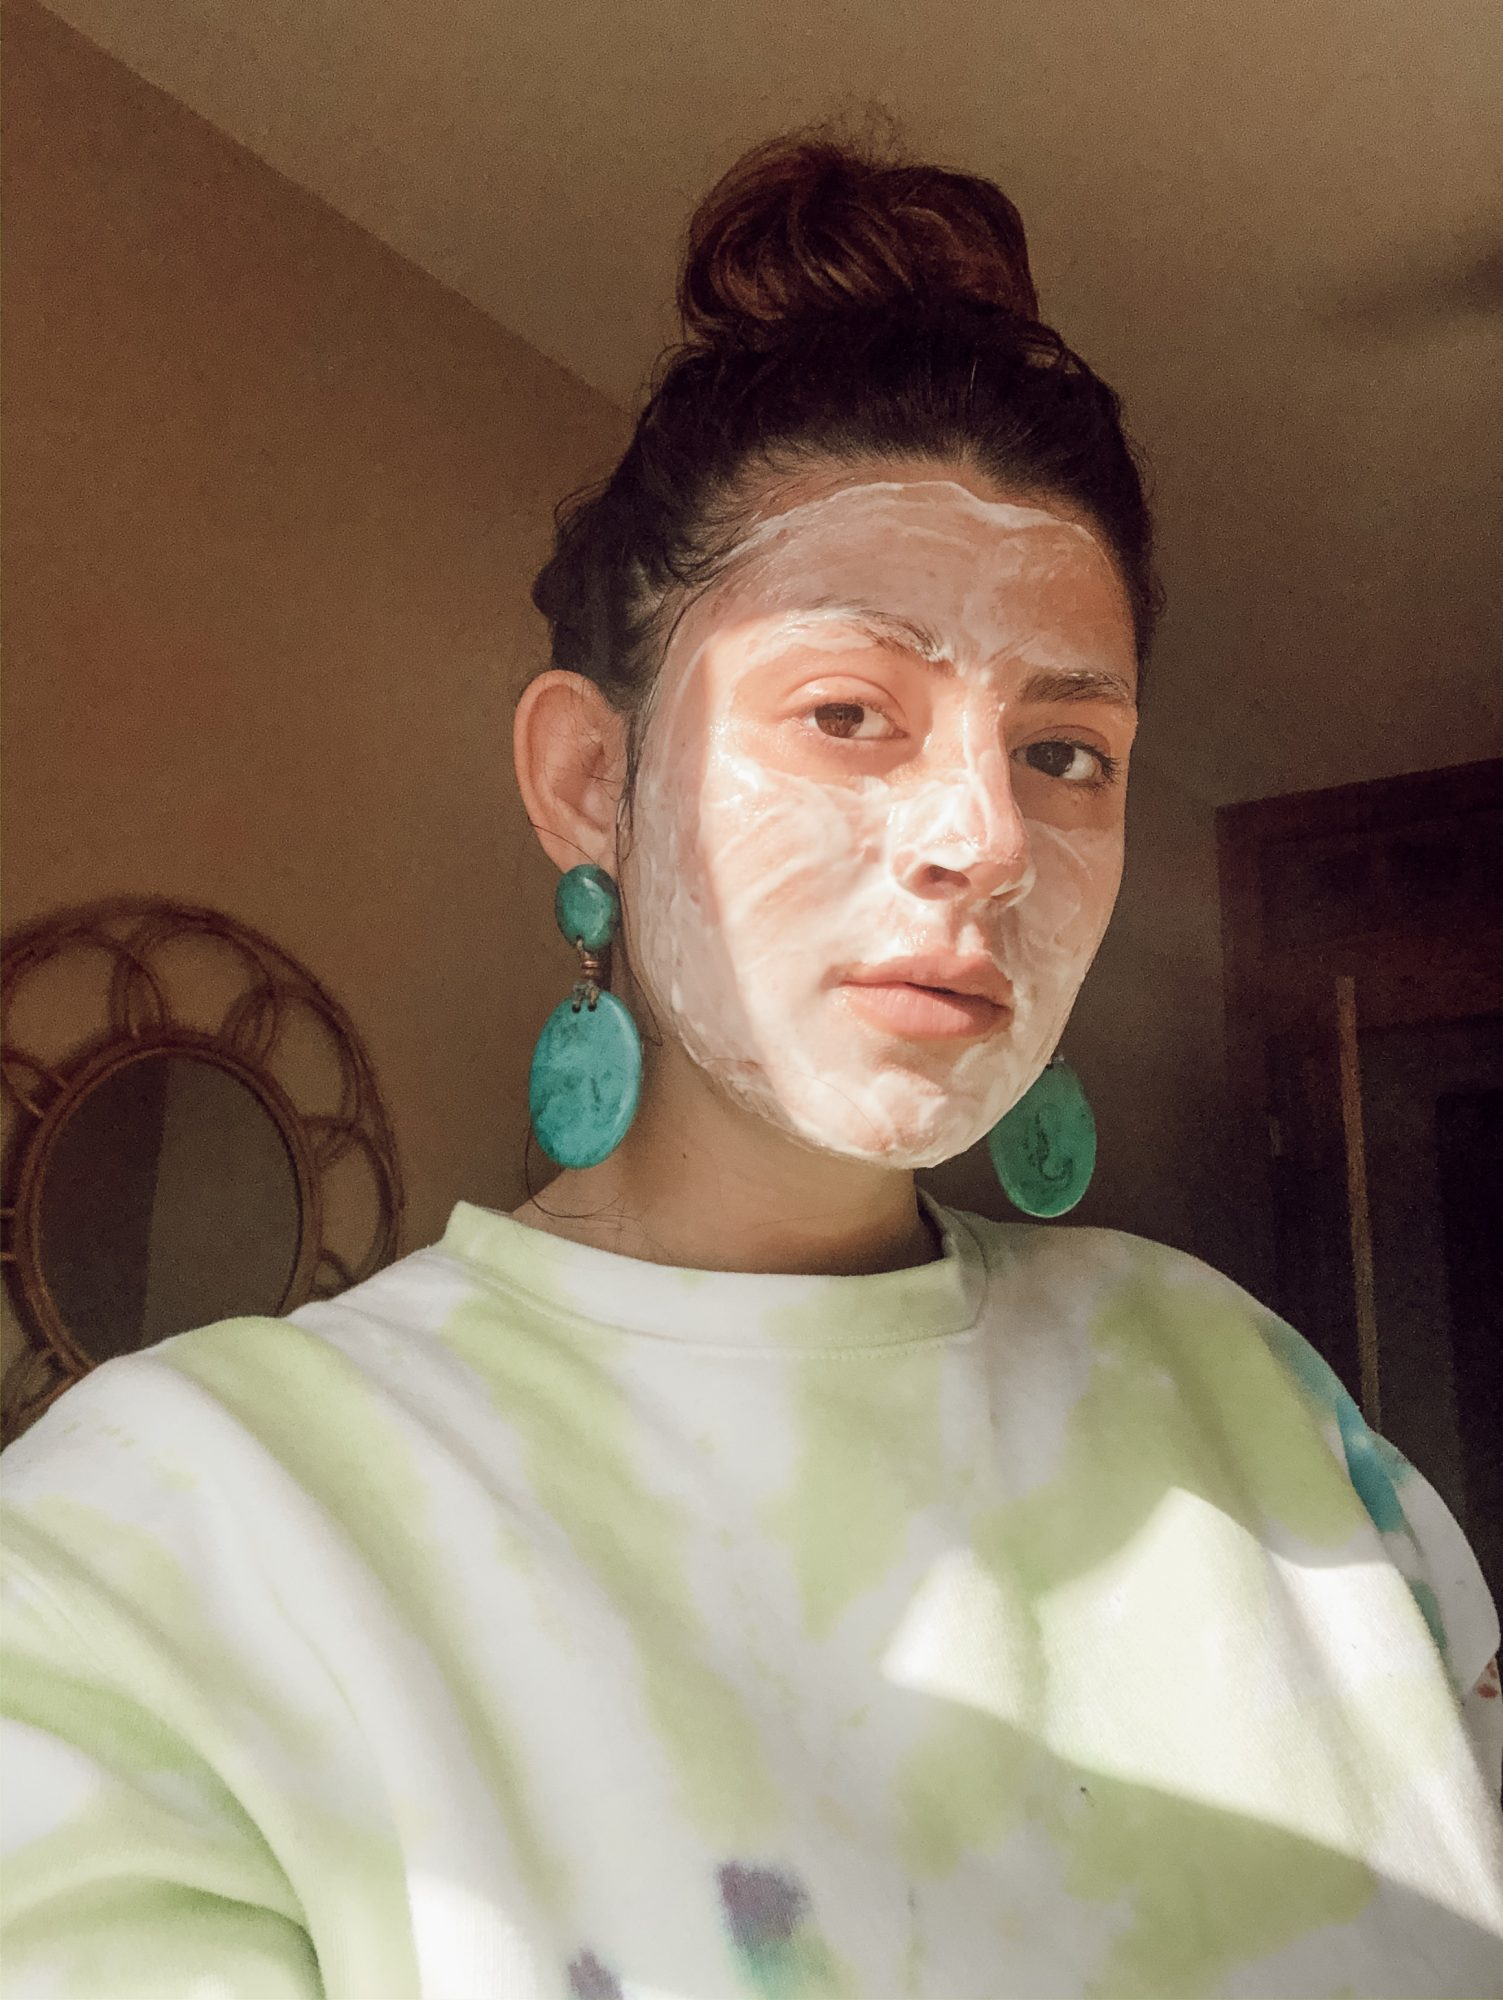 yogurt-face-mask.jpg